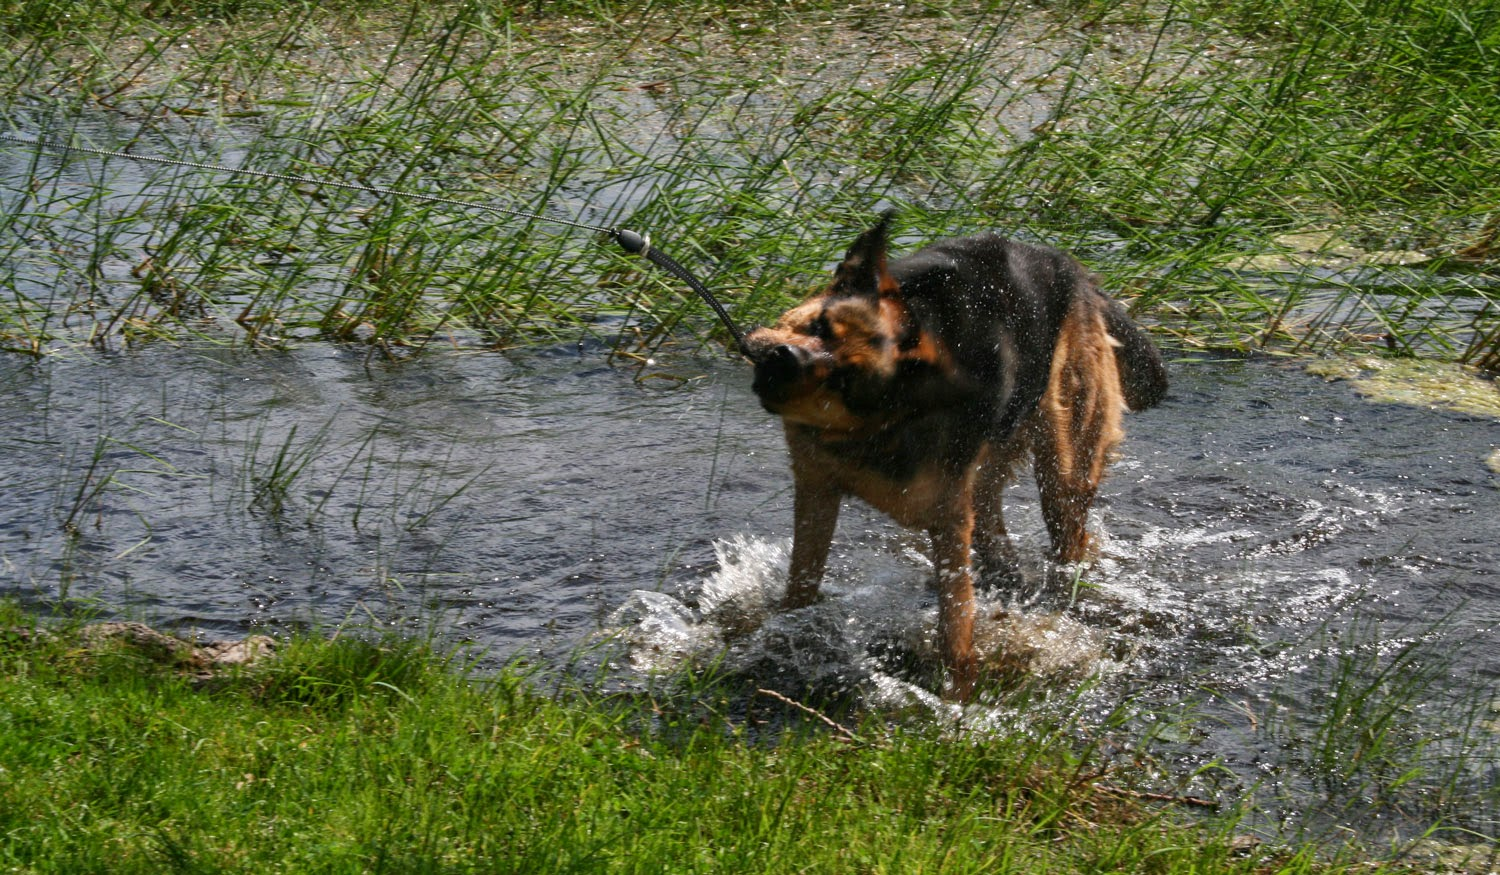 Shaking himself off in the water